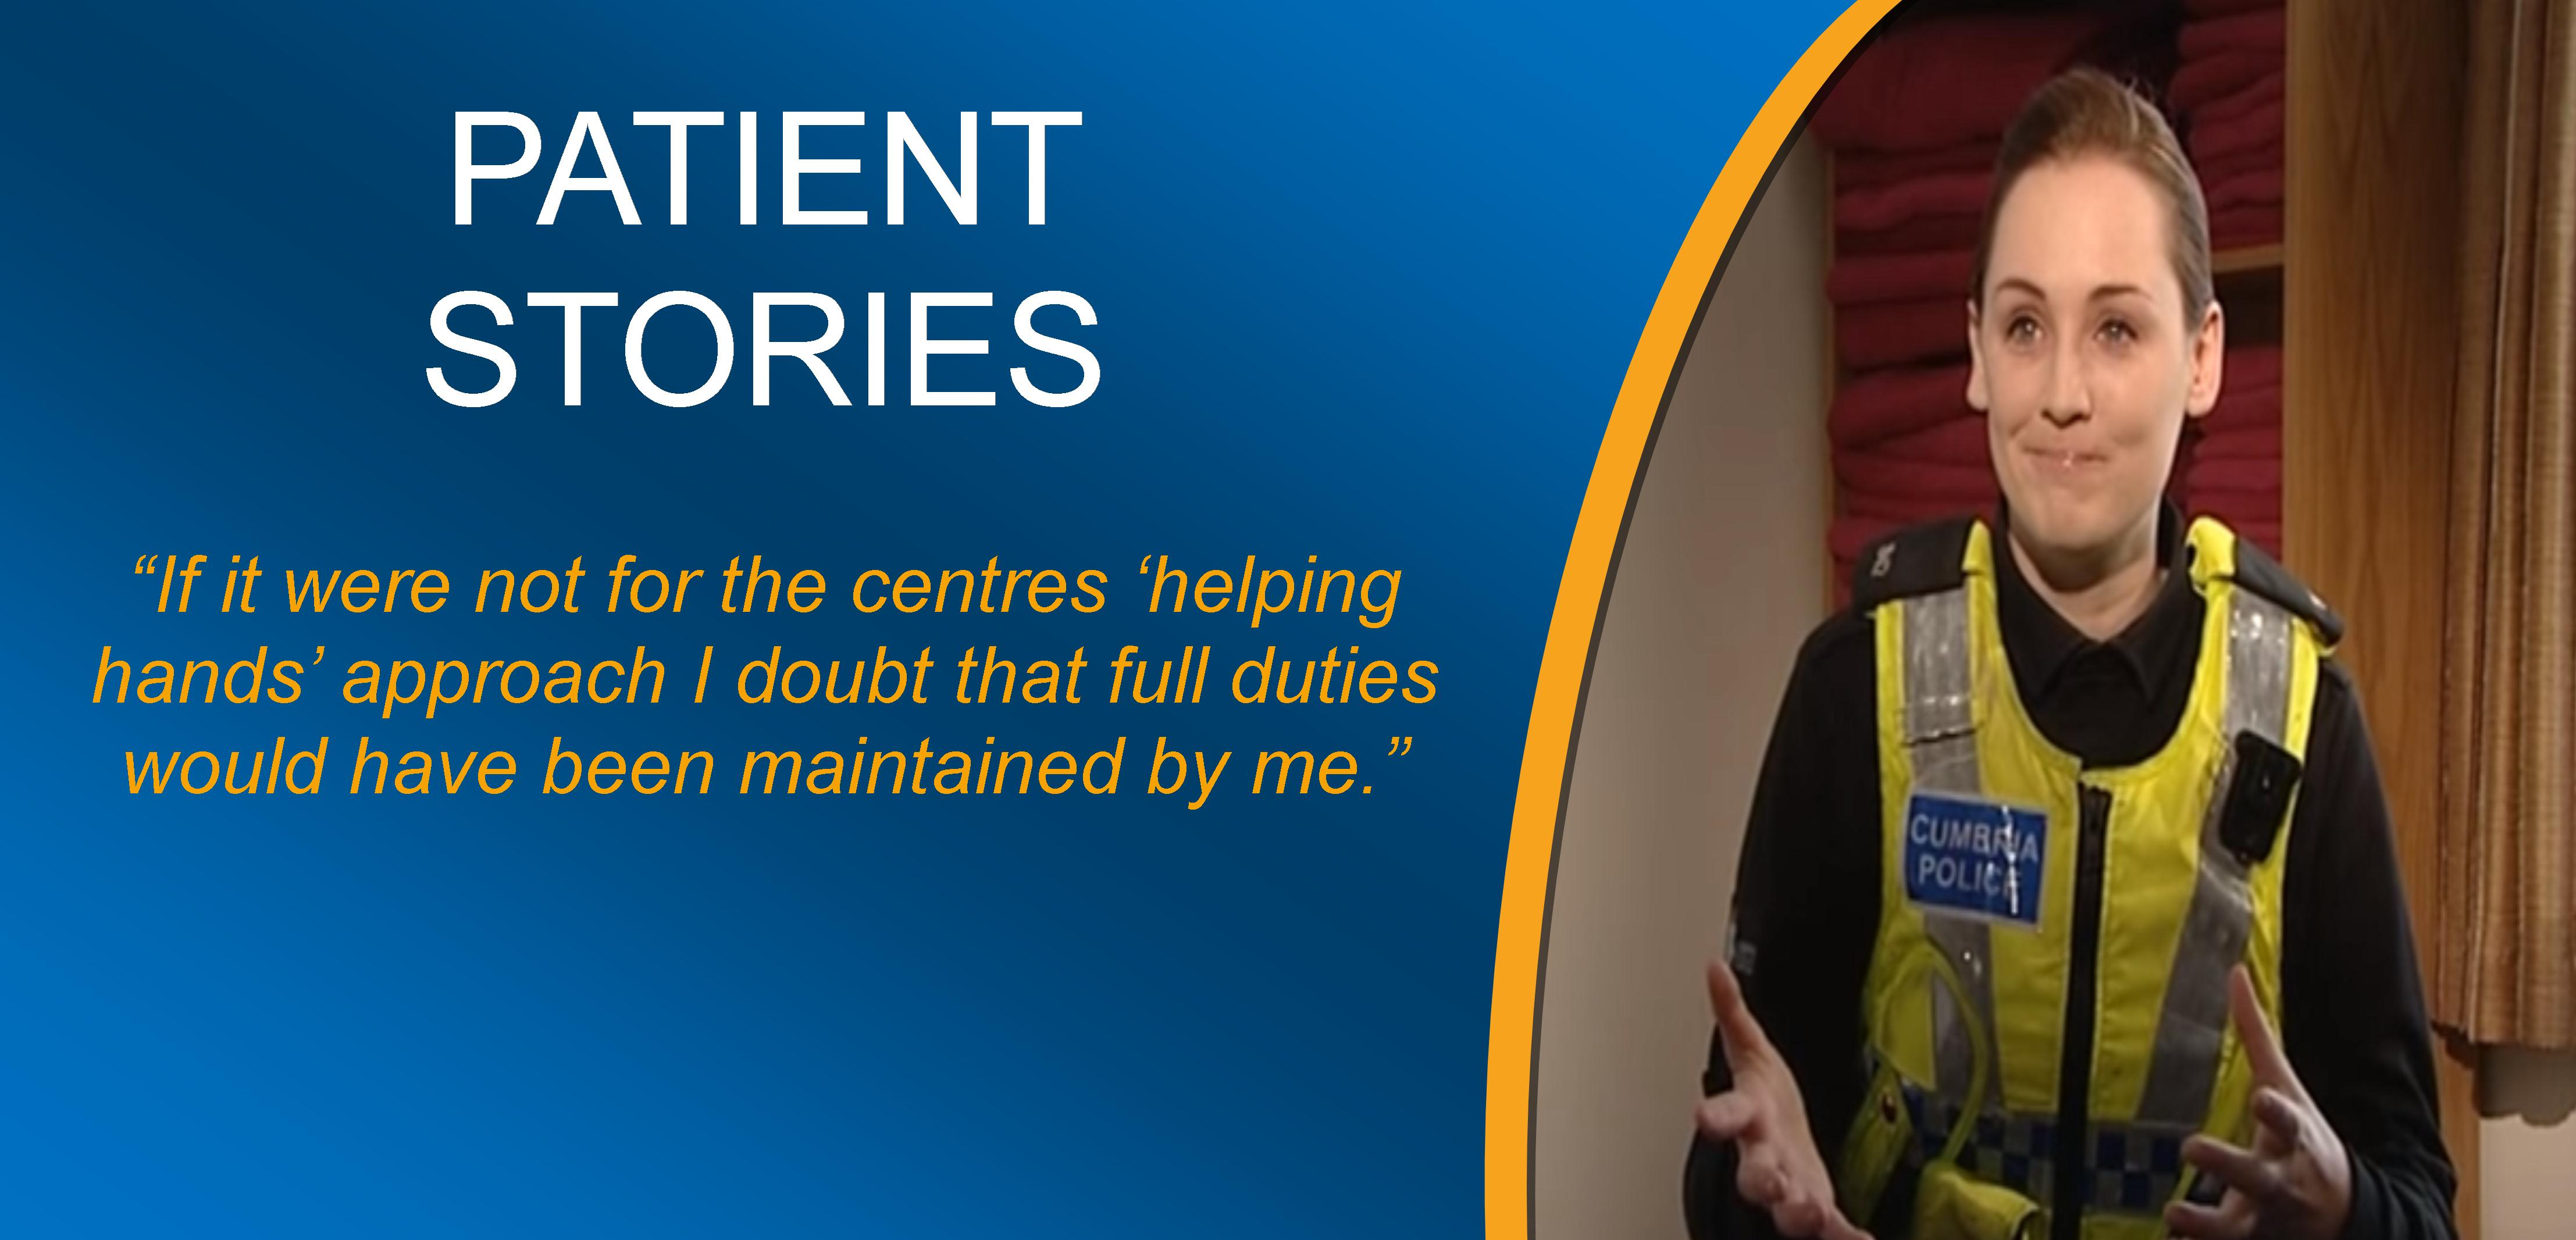 Patient Stories - View them on YouTube